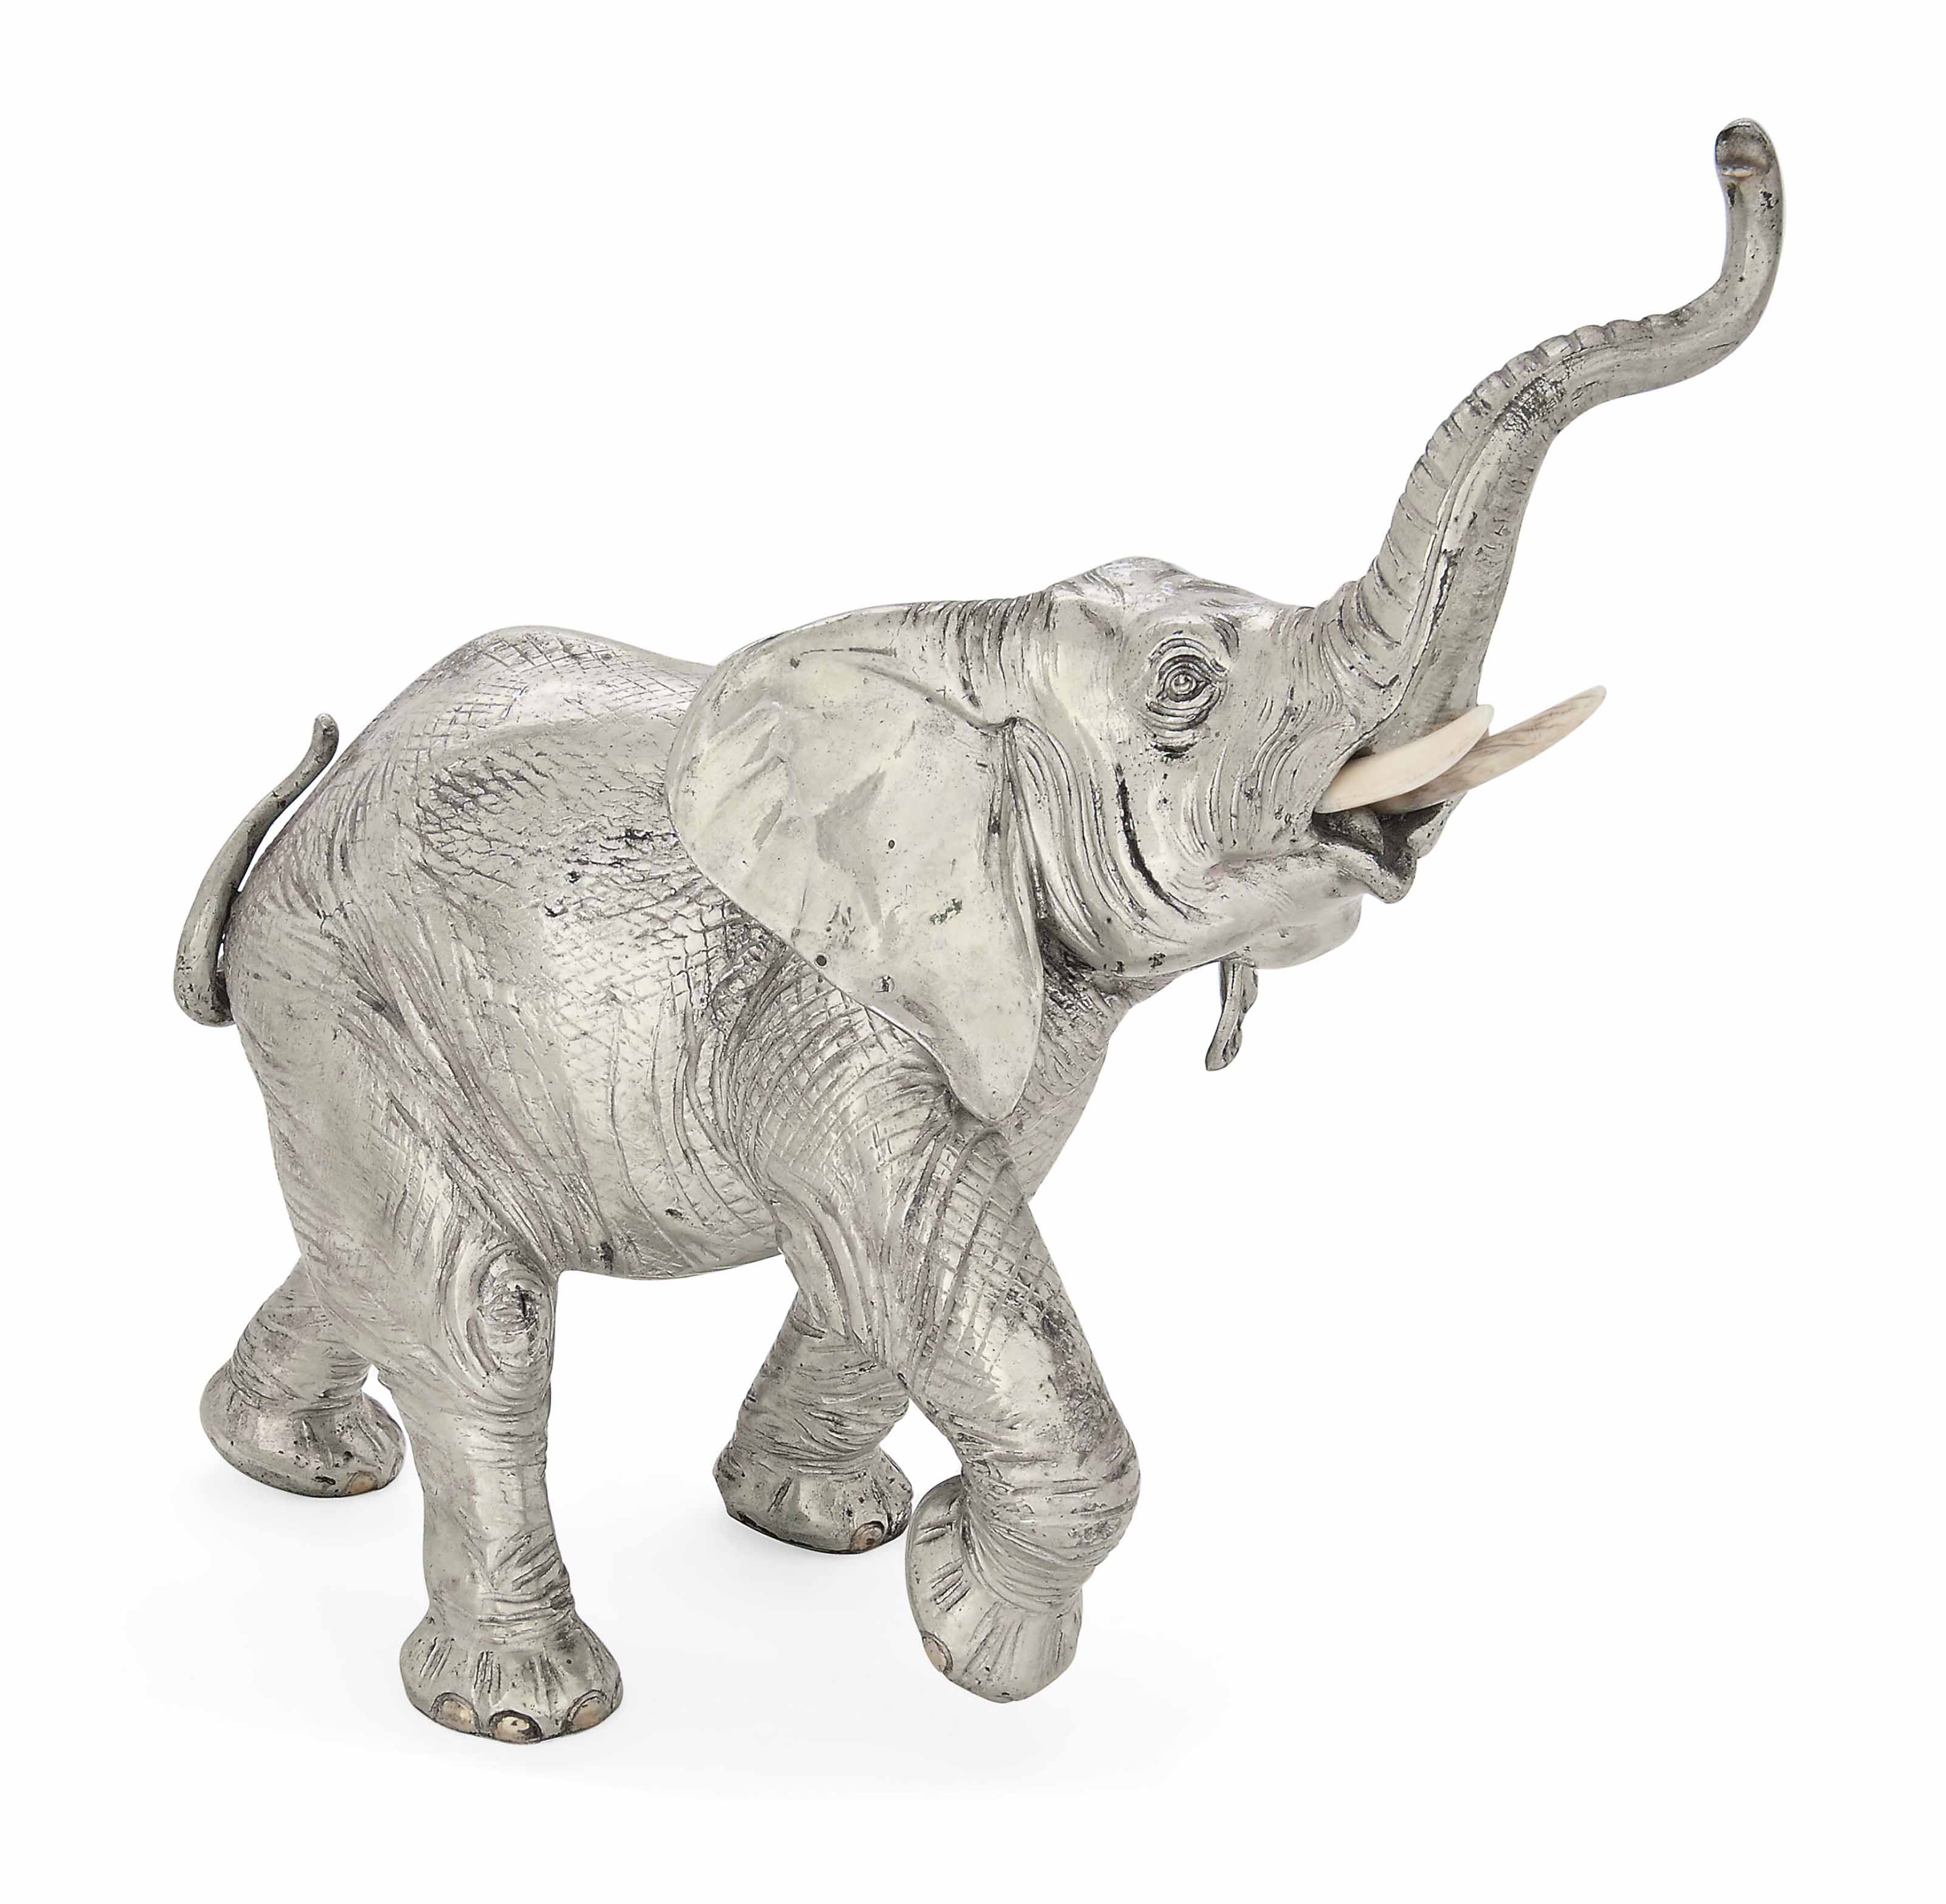 A GERMAN SILVER MODEL OF A CHARGING ELEPHANT